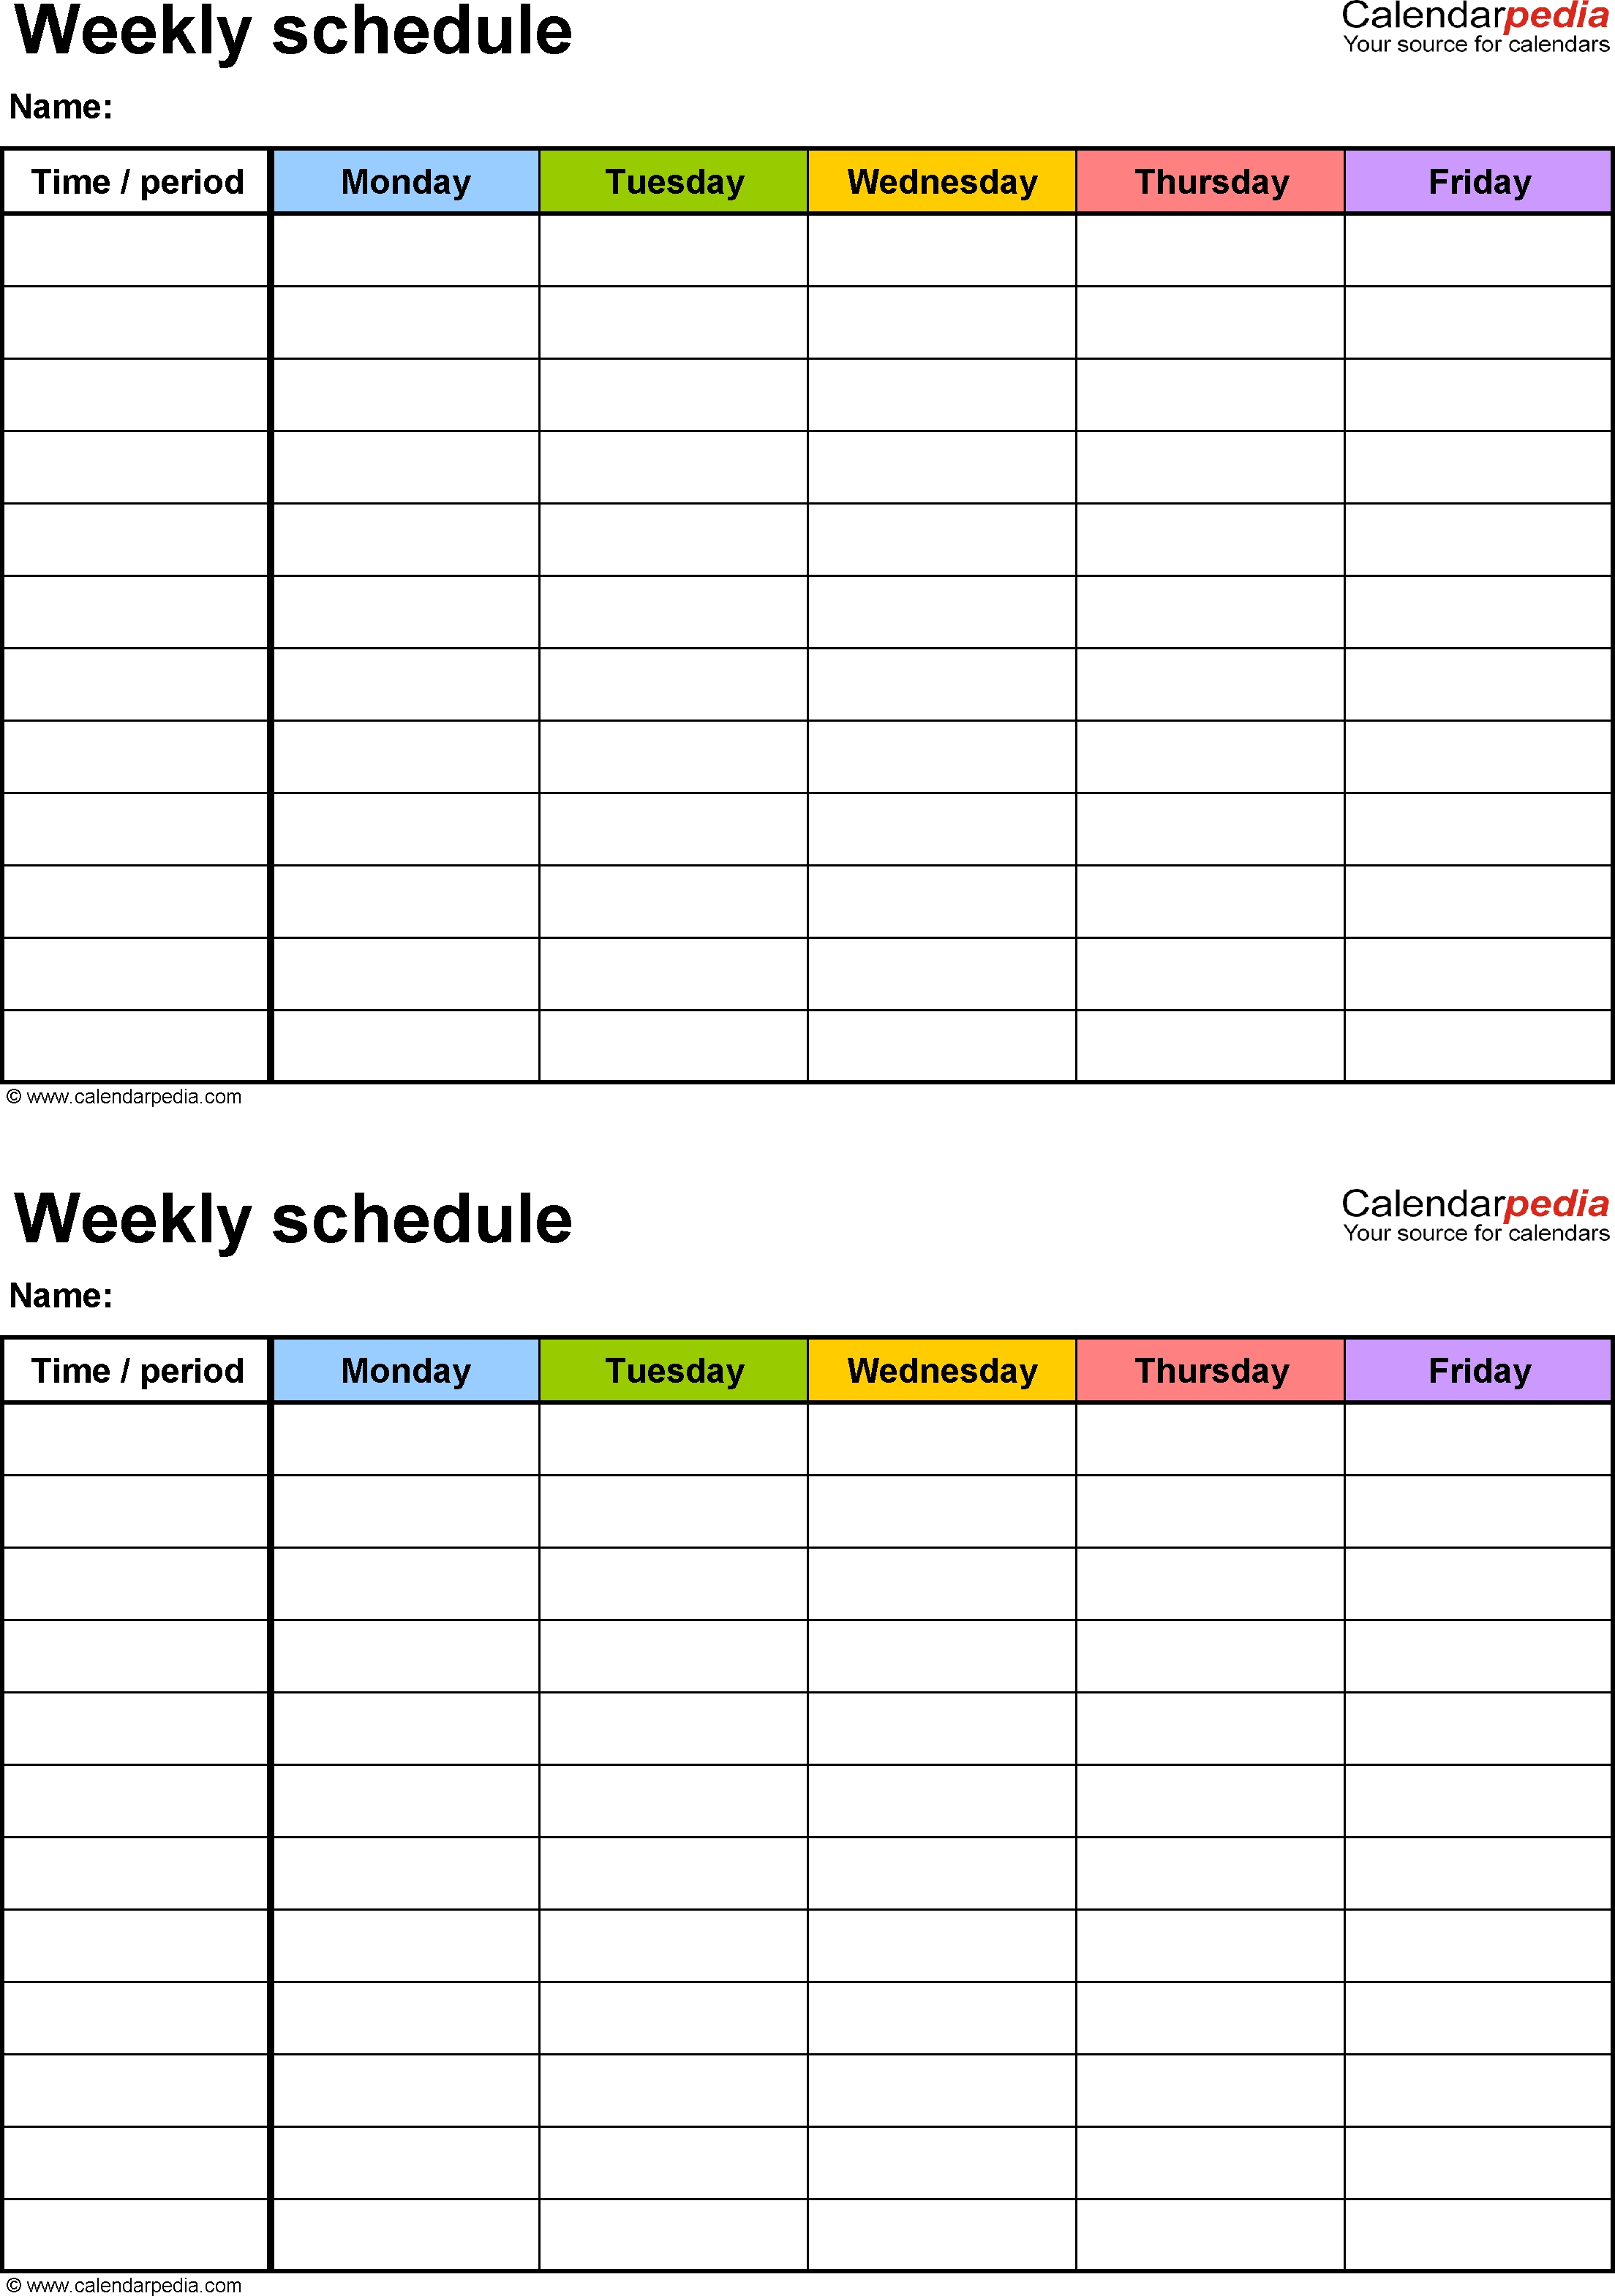 Free Weekly Schedule Templates For Word - 18 Templates pertaining to 2 Week Blank Calendar Template